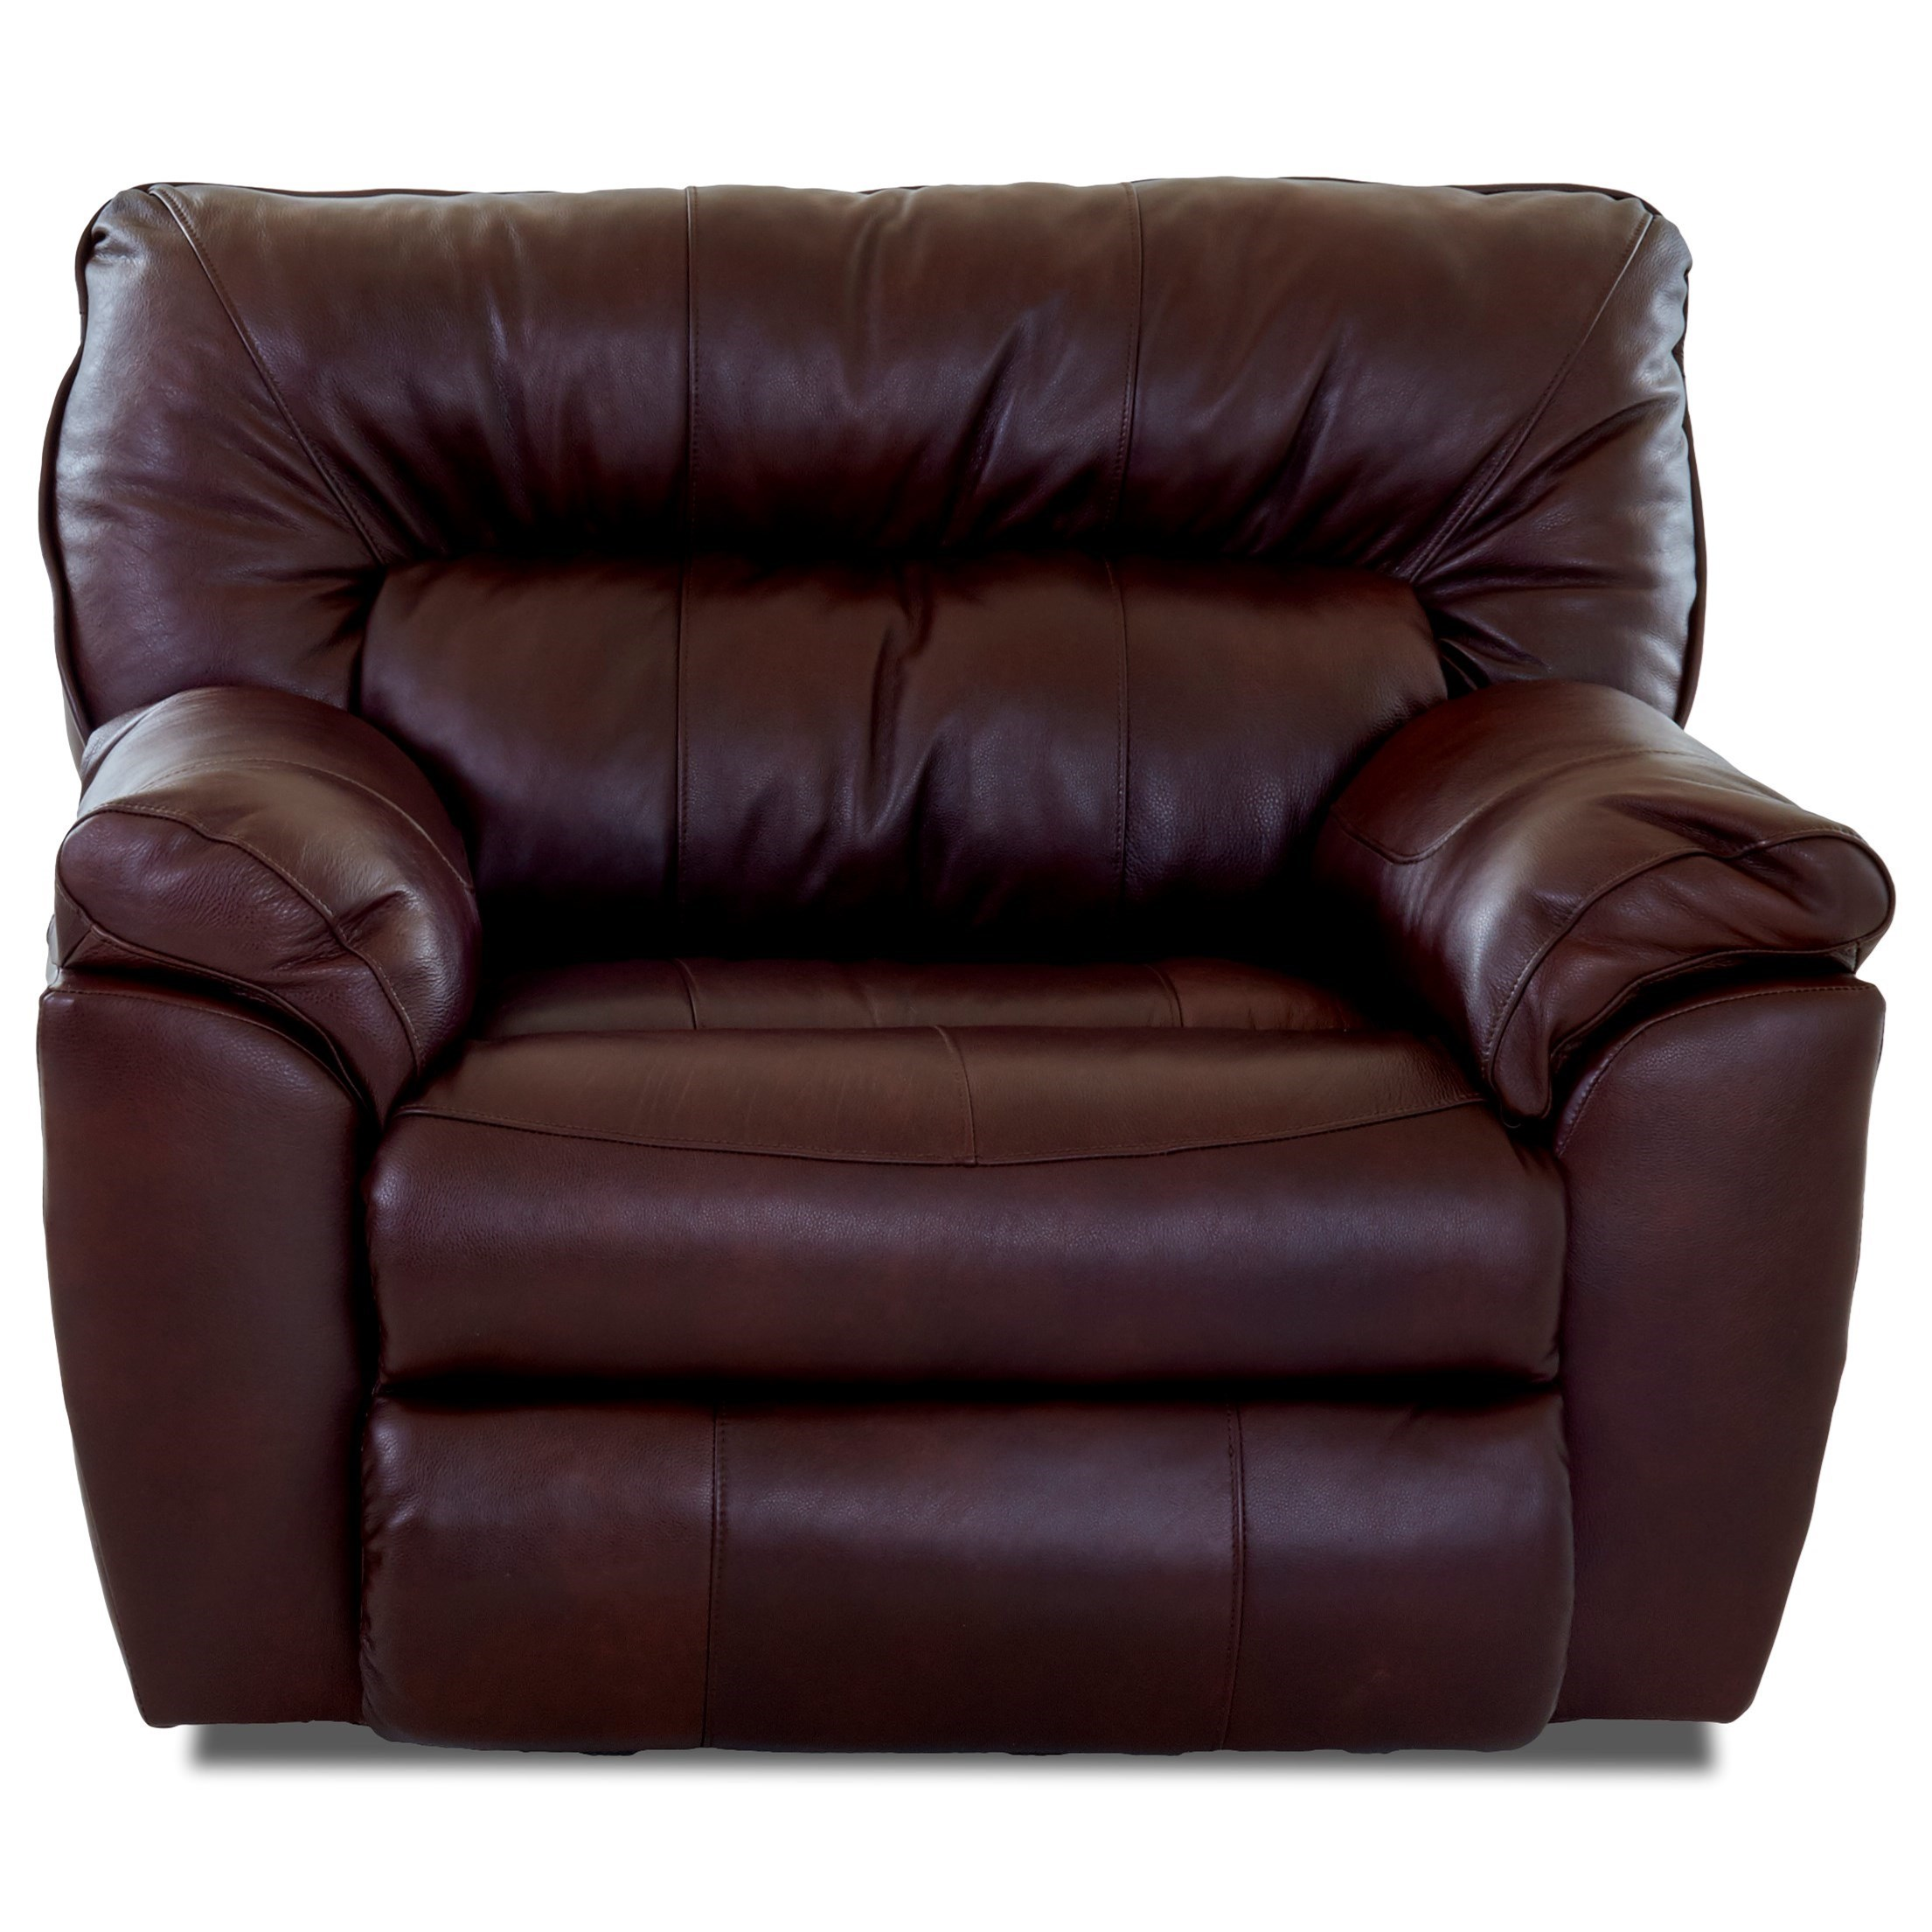 Freeman Casual Recliner by Klaussner at Johnny Janosik